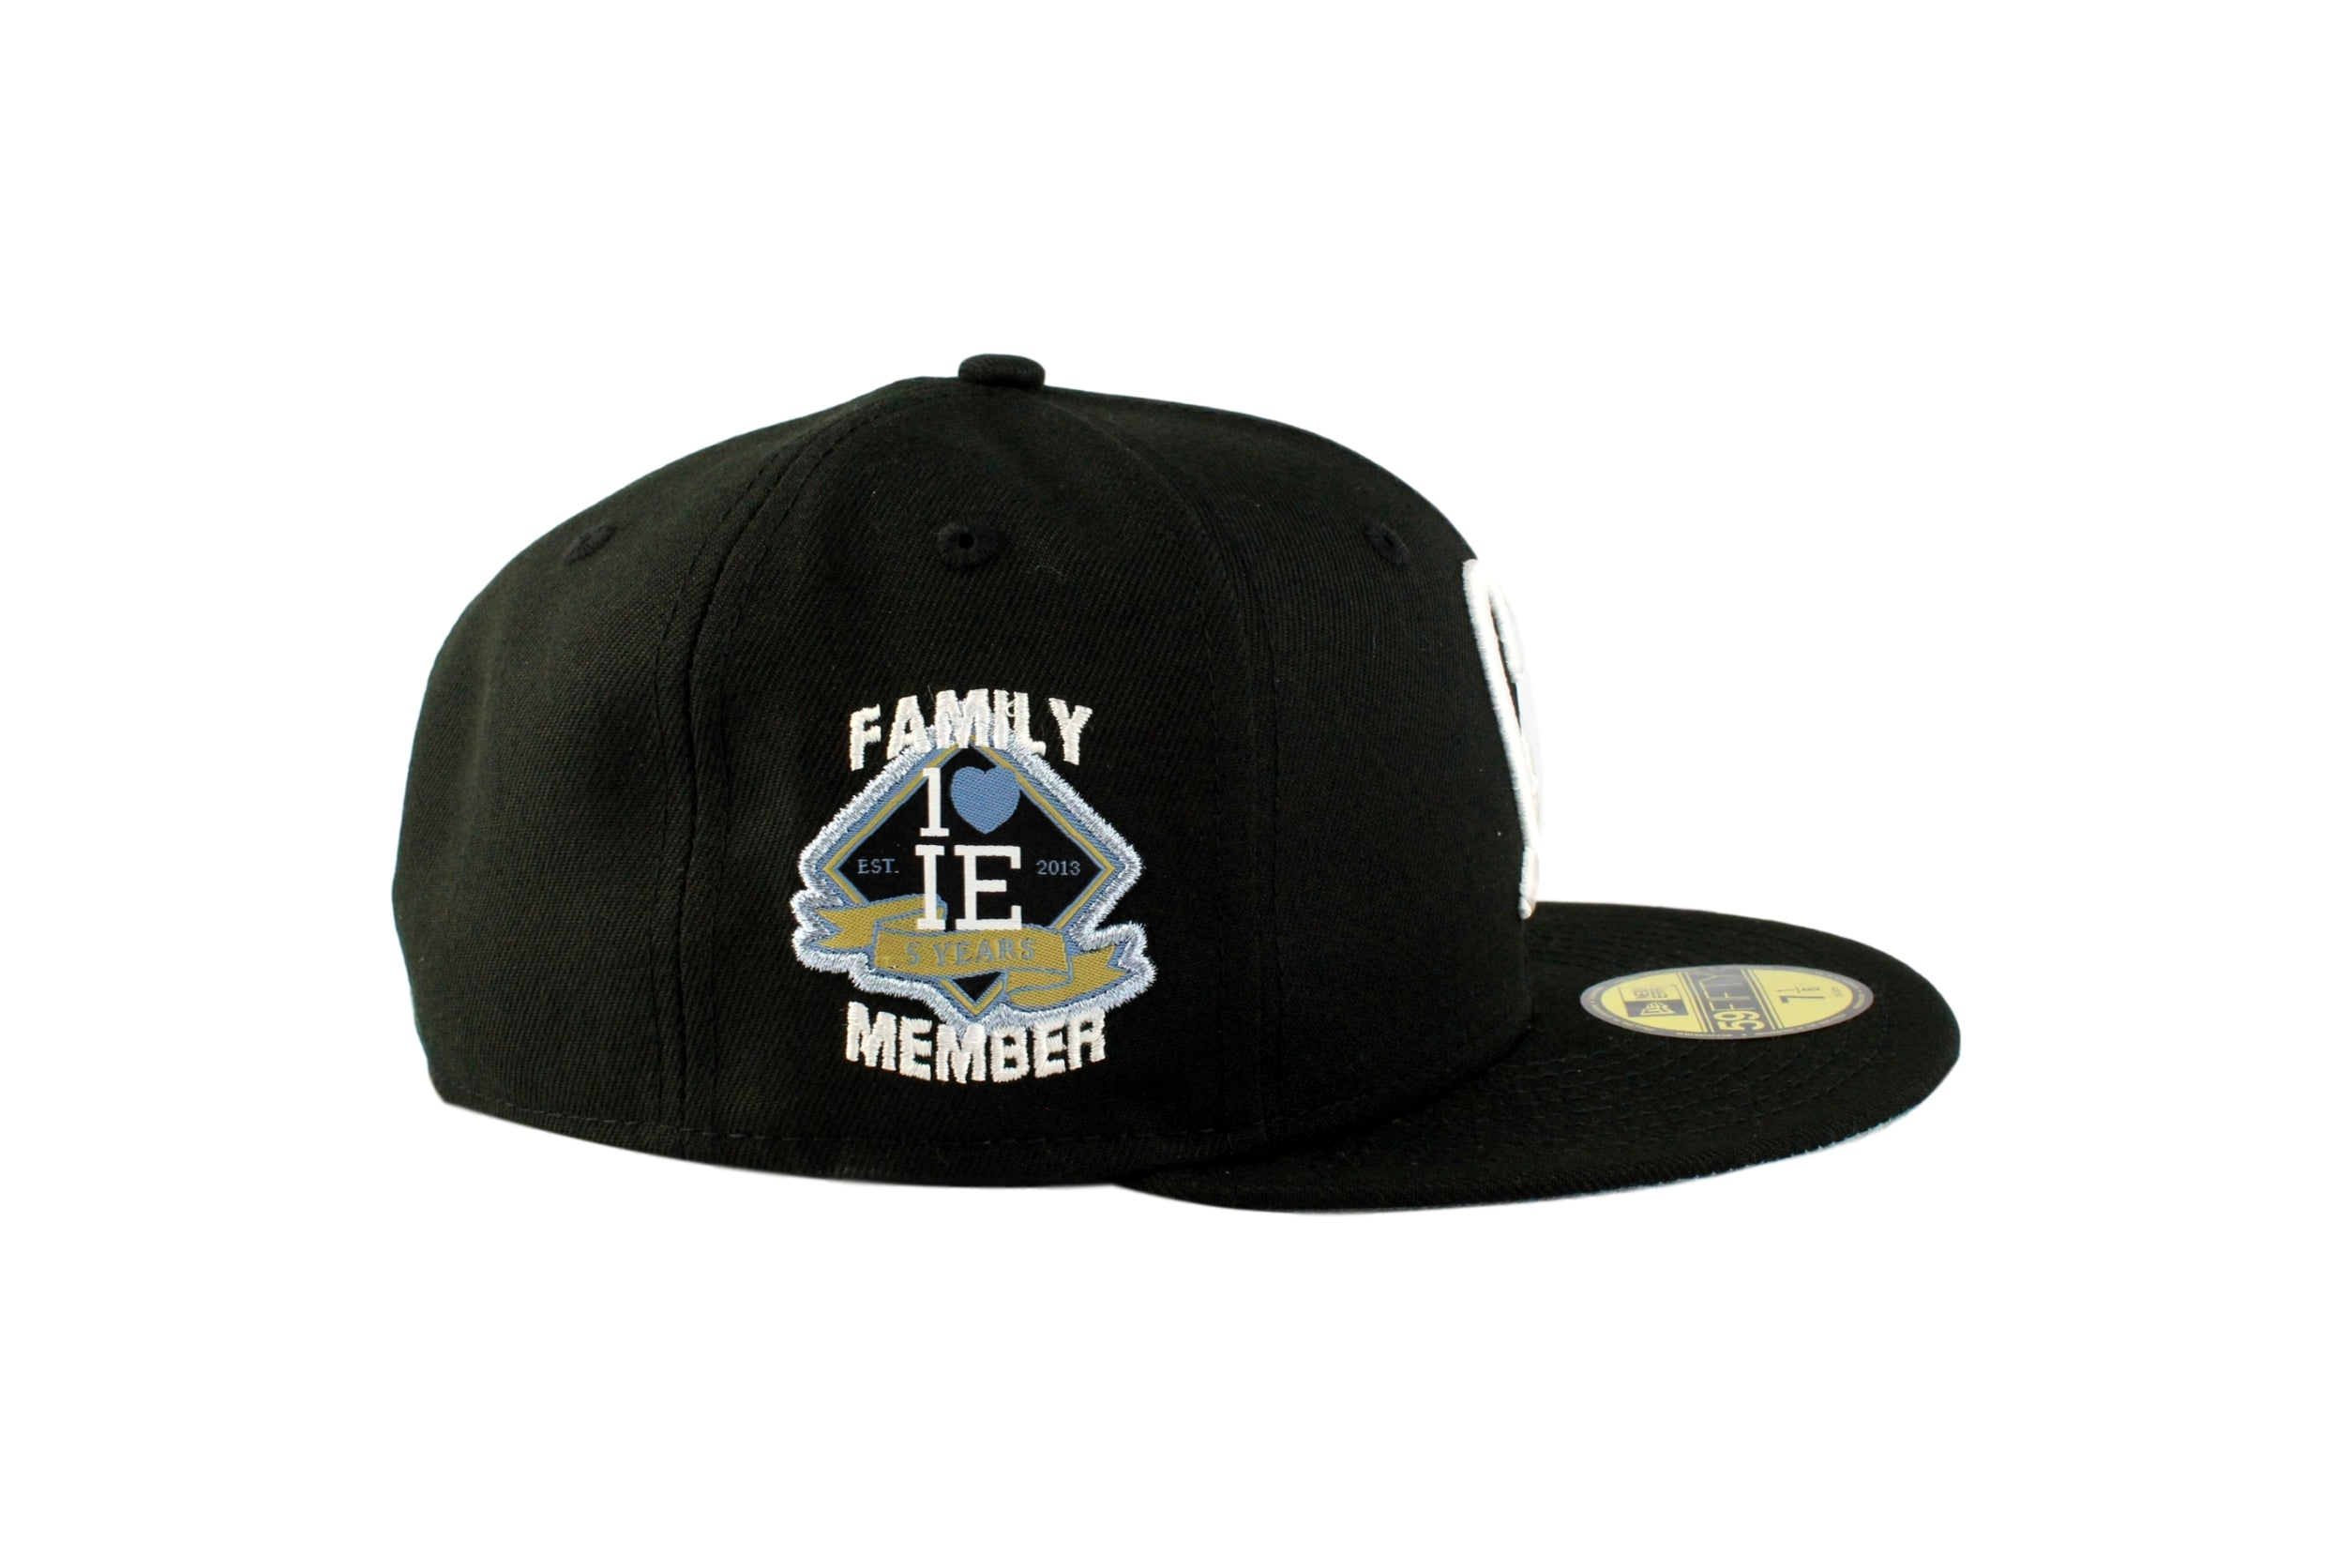 a0b38a5f3a0 Limited Black   White 1LoveIE New Era 59FIFTY Fitted Cap